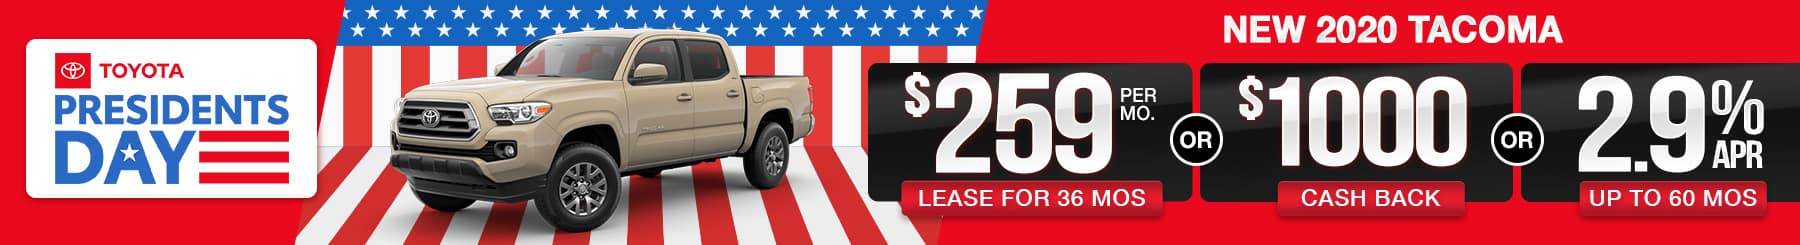 2020 Tacoma Lease or Finance Offers